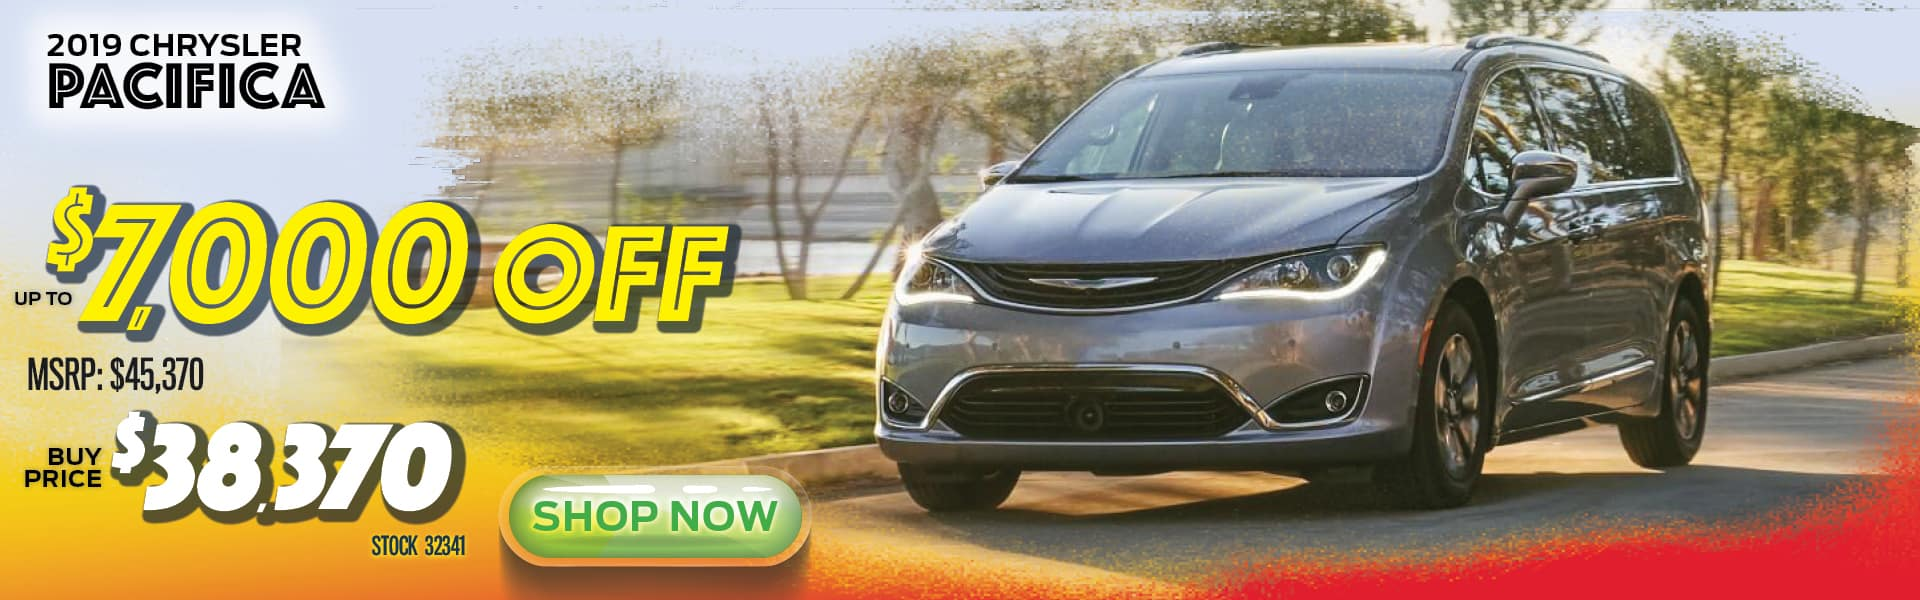 New Chrysler Pacifica for Sale in Roswell, GA